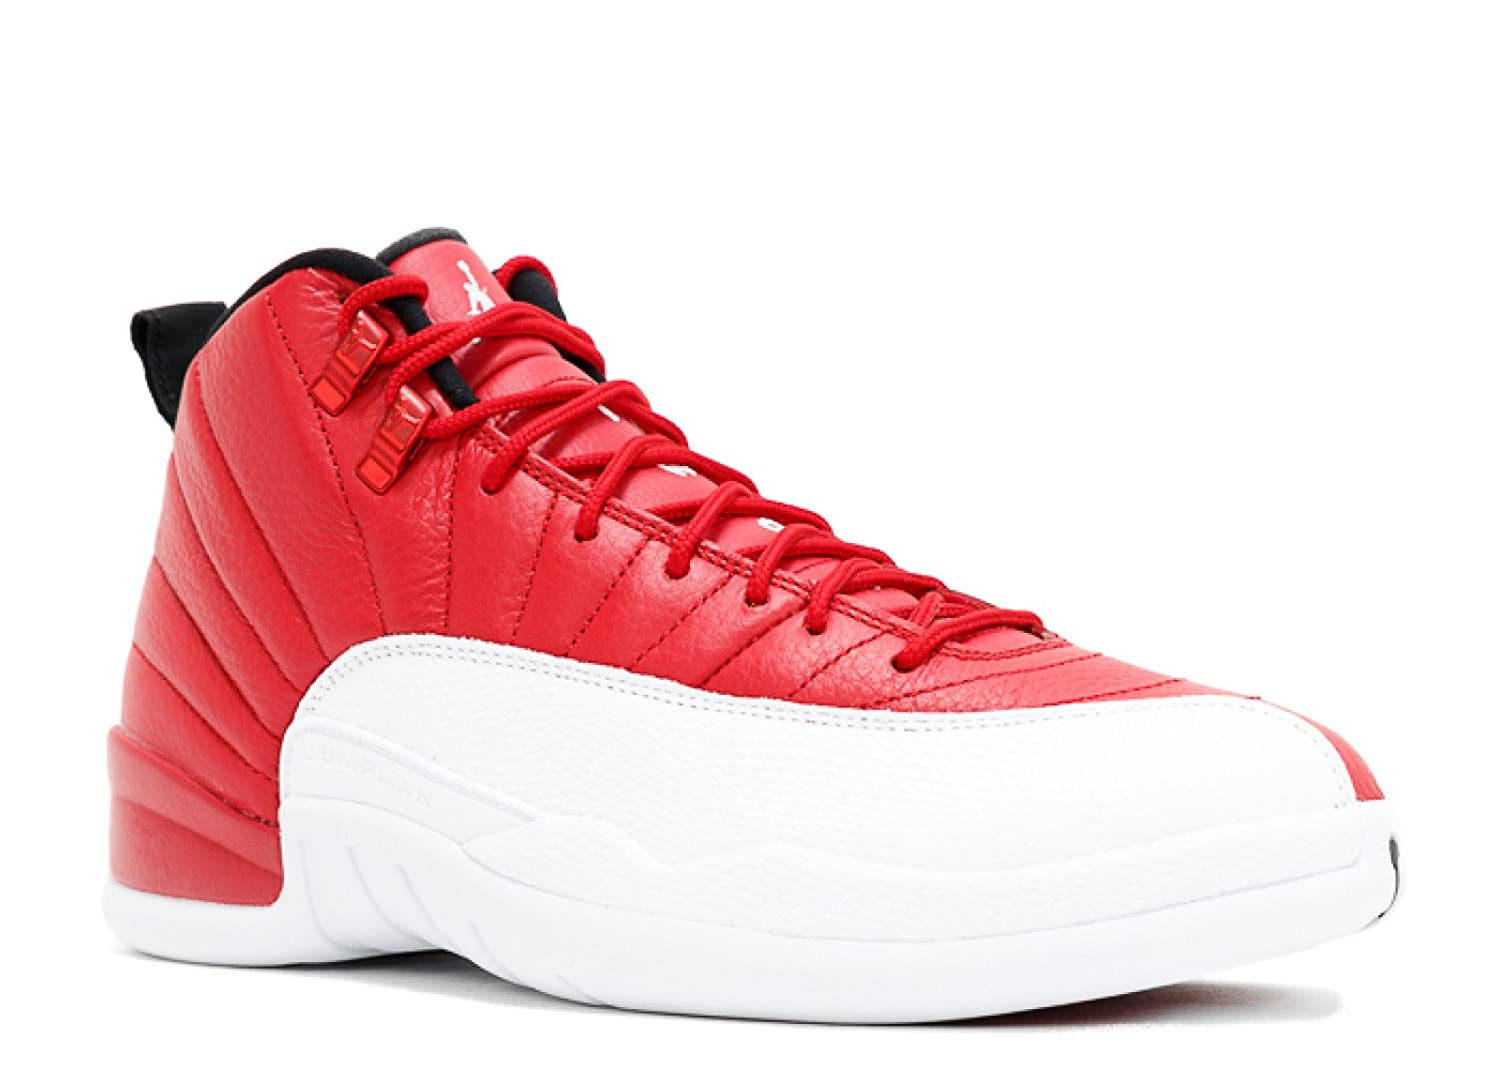 the best attitude 747ac 8d37c Nike Men's Air Jordan 12 Retro, Gym Red/White-Black, 18